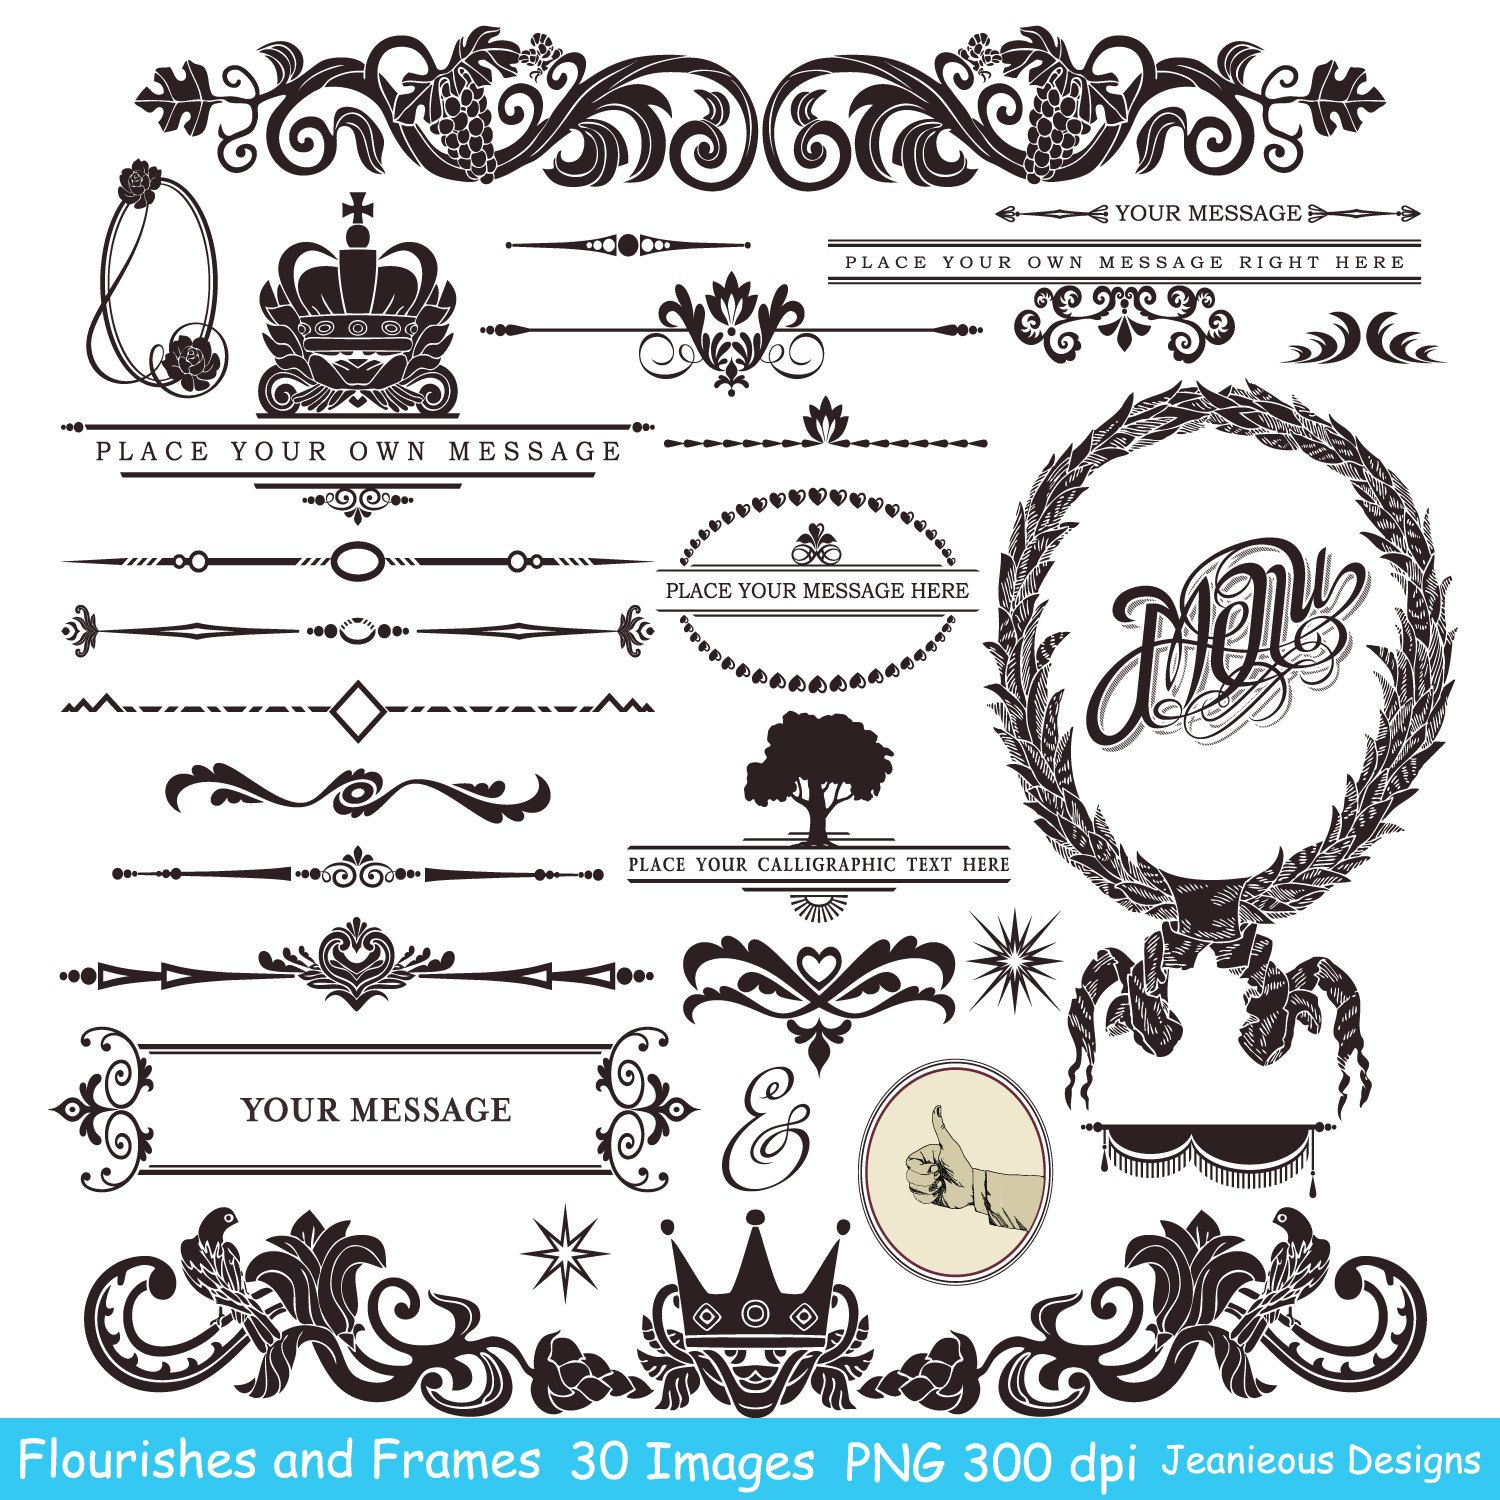 Vintage calligraphy clip art design style elements wedding